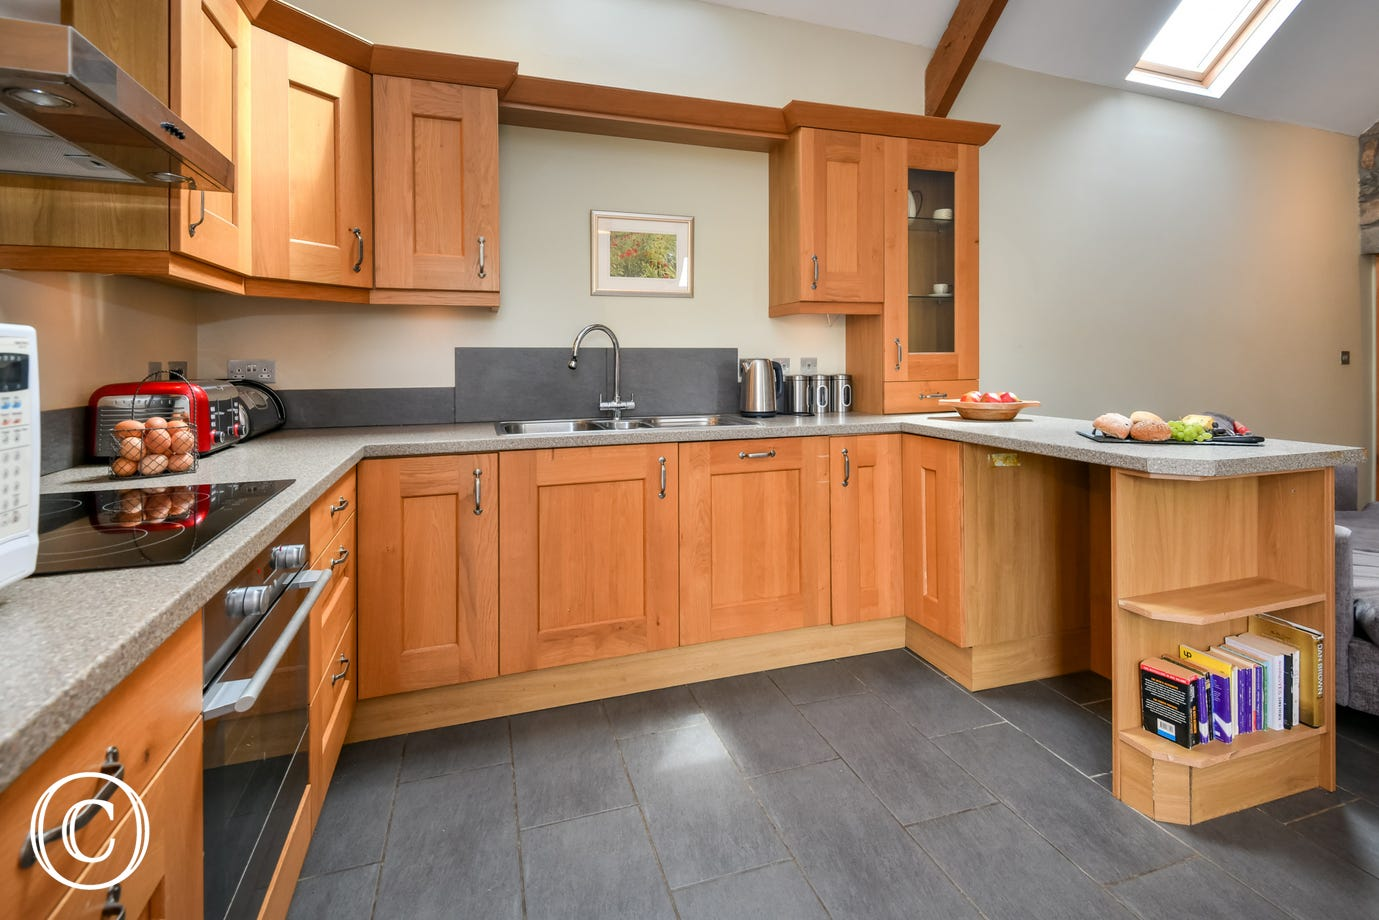 Oak kitchen with electric oven, fridge-freezer, dishwasher & microwave